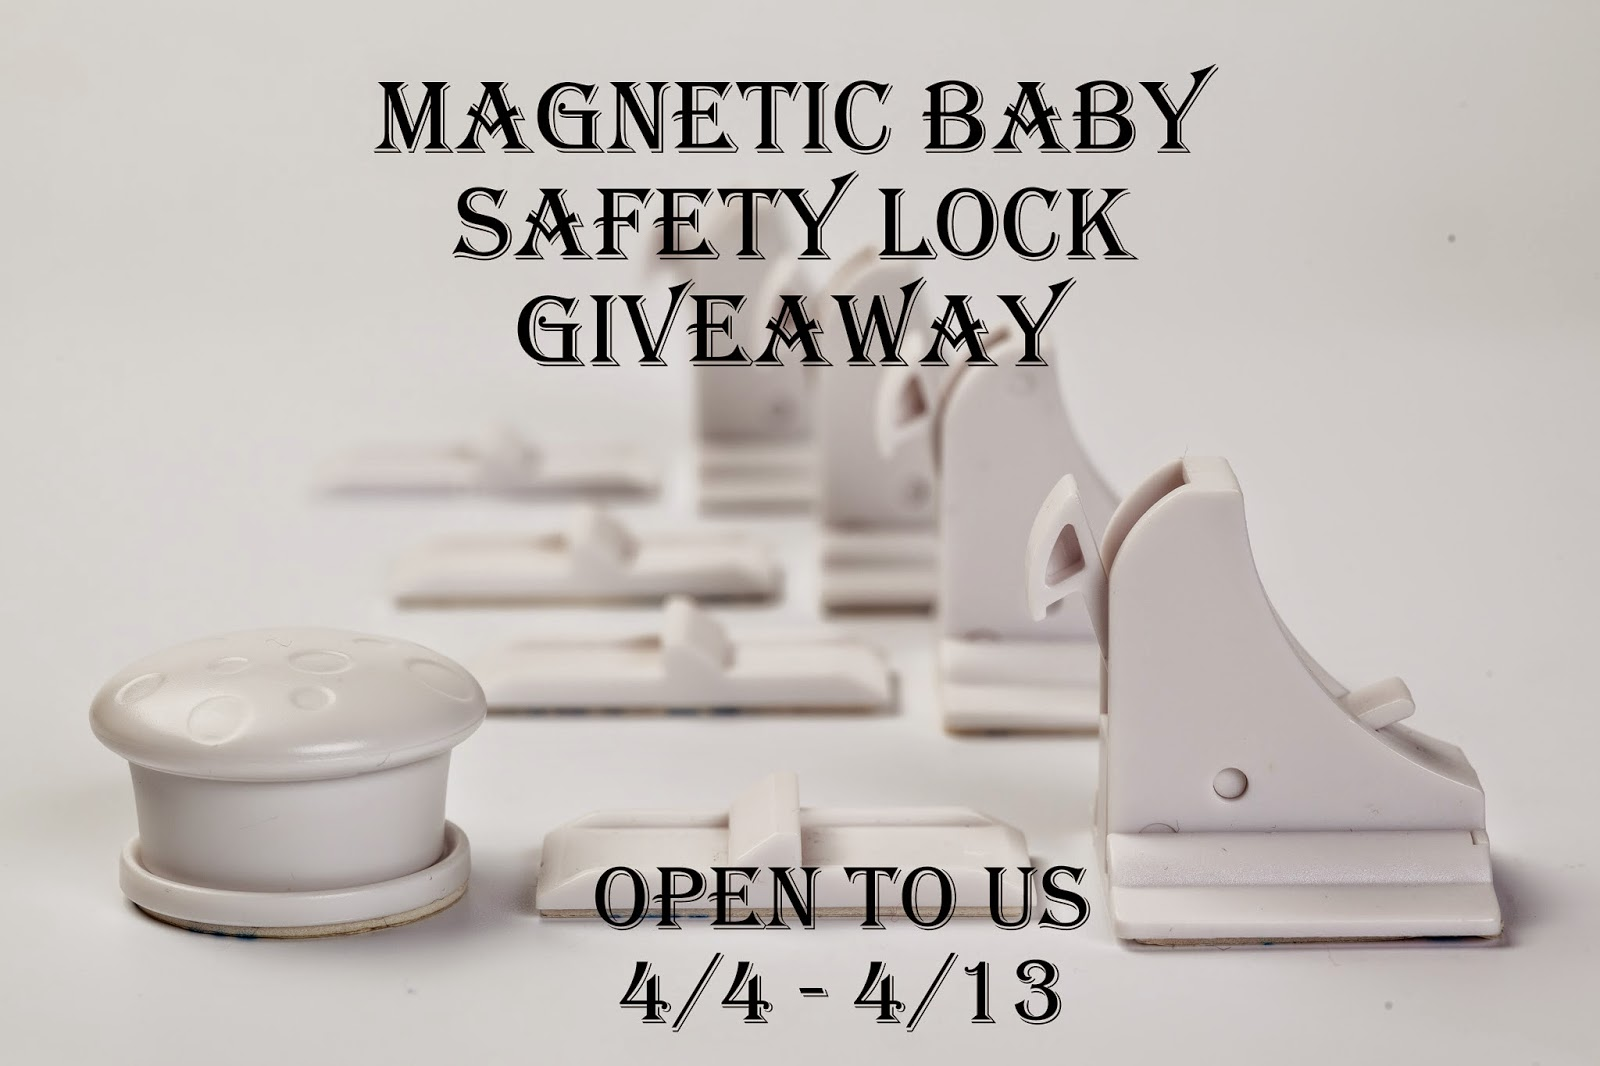 http://notquitecrunchymommy.blogspot.com/2015/04/magnetic-baby-safety-lock-for-cabinets.html